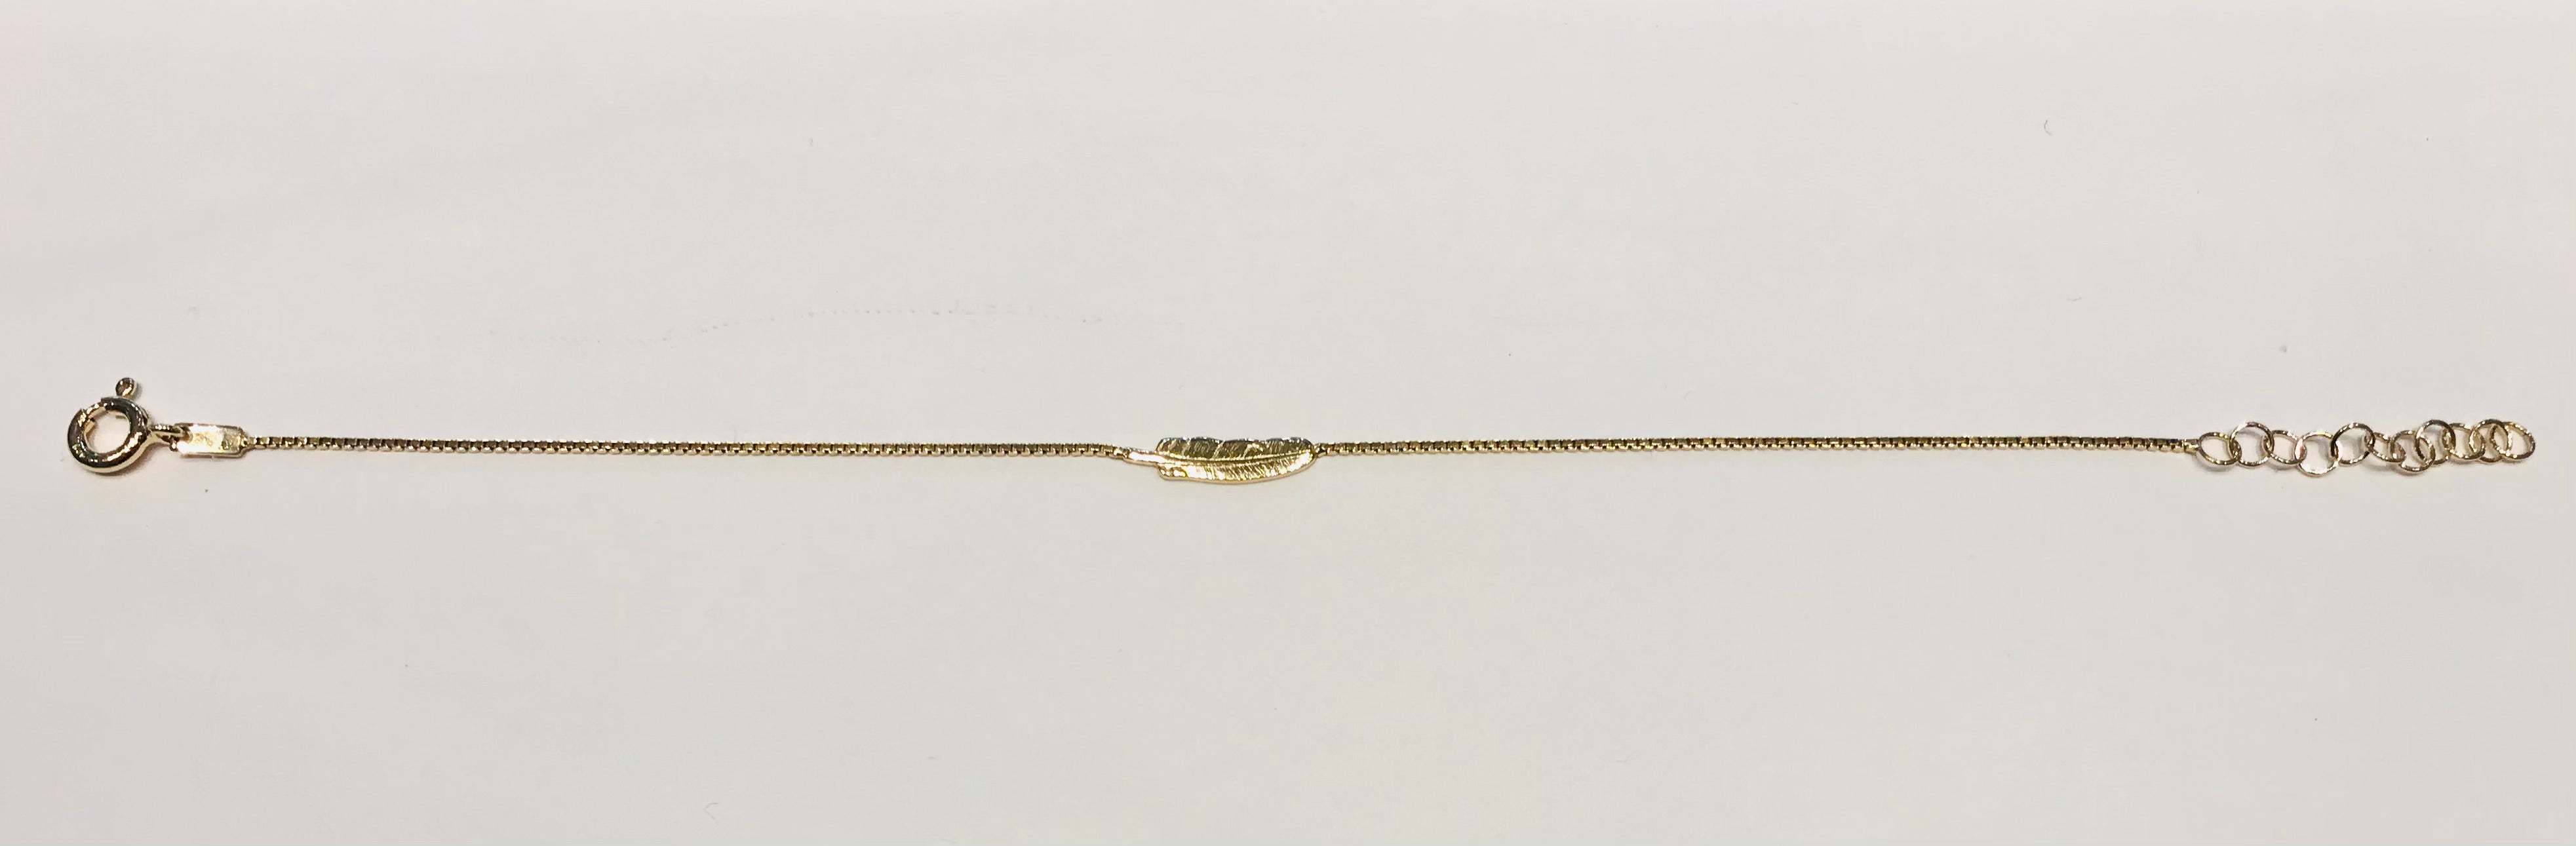 SAM&CEL goldplated bracelet with little feather